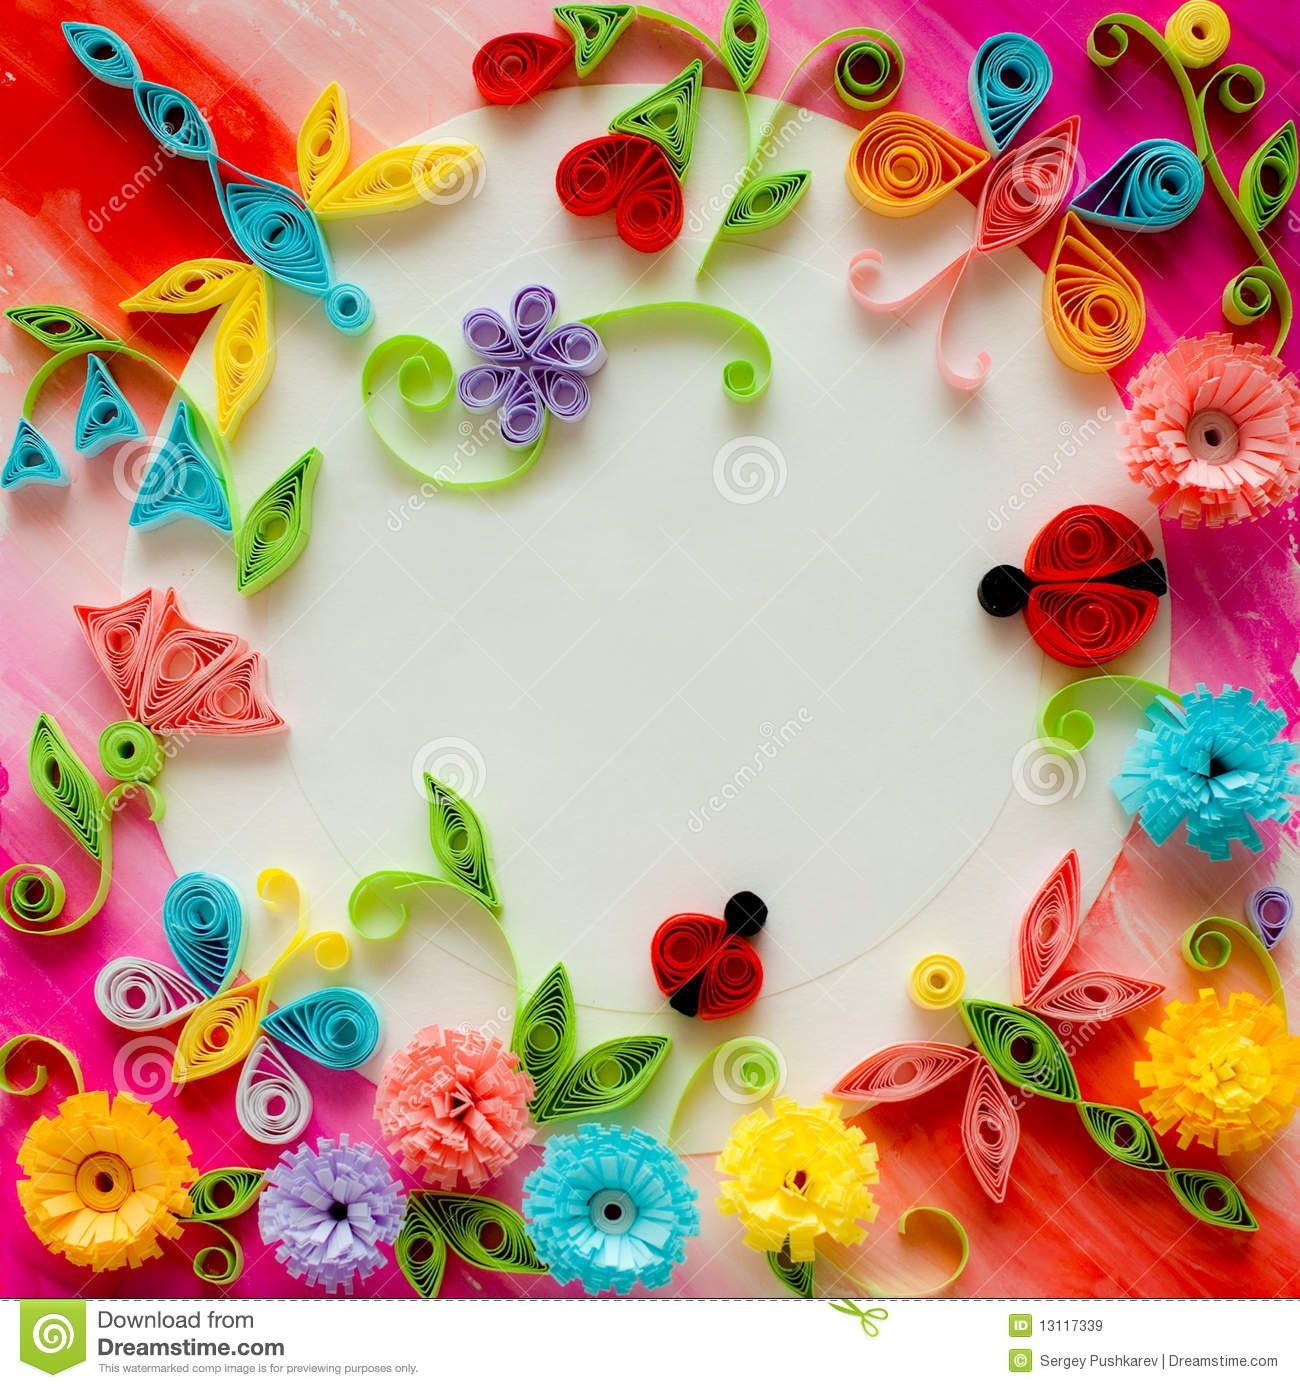 Wiosna  Qulling    Quilling Paper Quilling And Craft